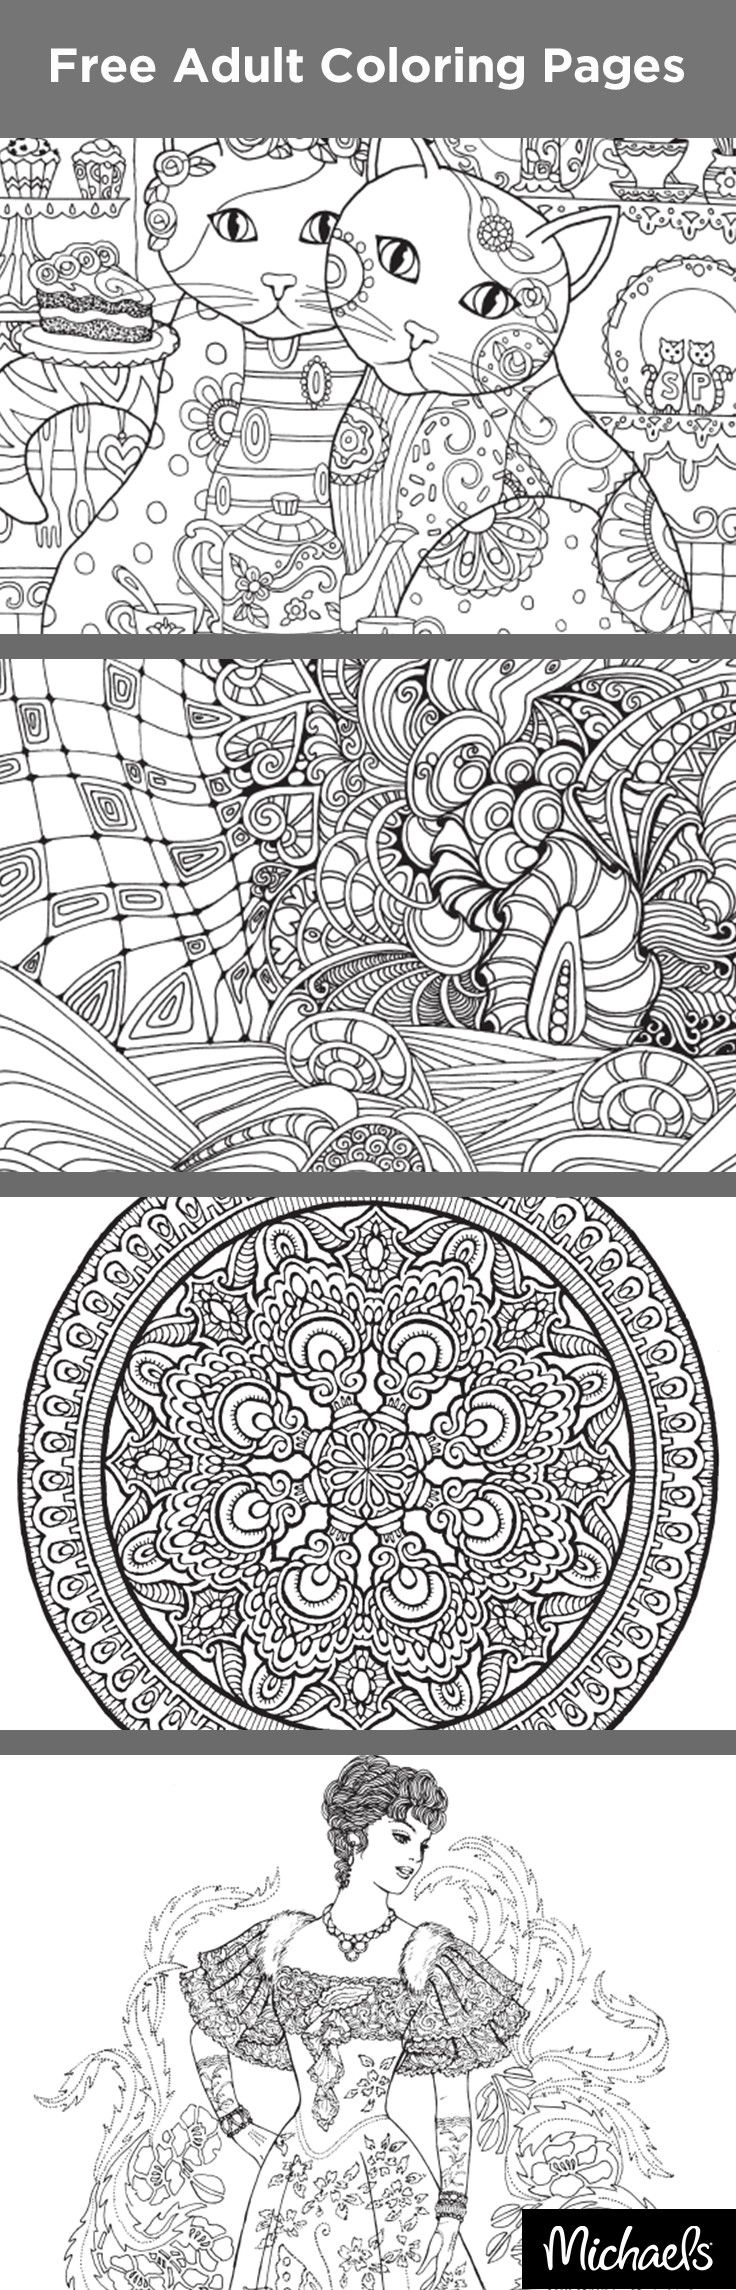 d3631e4d8f2e95d13ca3794010f689b6  free coloring pages coloring sheets along with mandala coloring book michaels archives coloring page on mandala coloring pages michaels further mandala designs coloring book michaels coloring page on mandala coloring pages michaels furthermore michael jackson coloring page michael jackson coloring on mandala coloring pages michaels also with 54 best images about coloring for grownups on pinterest adult on mandala coloring pages michaels